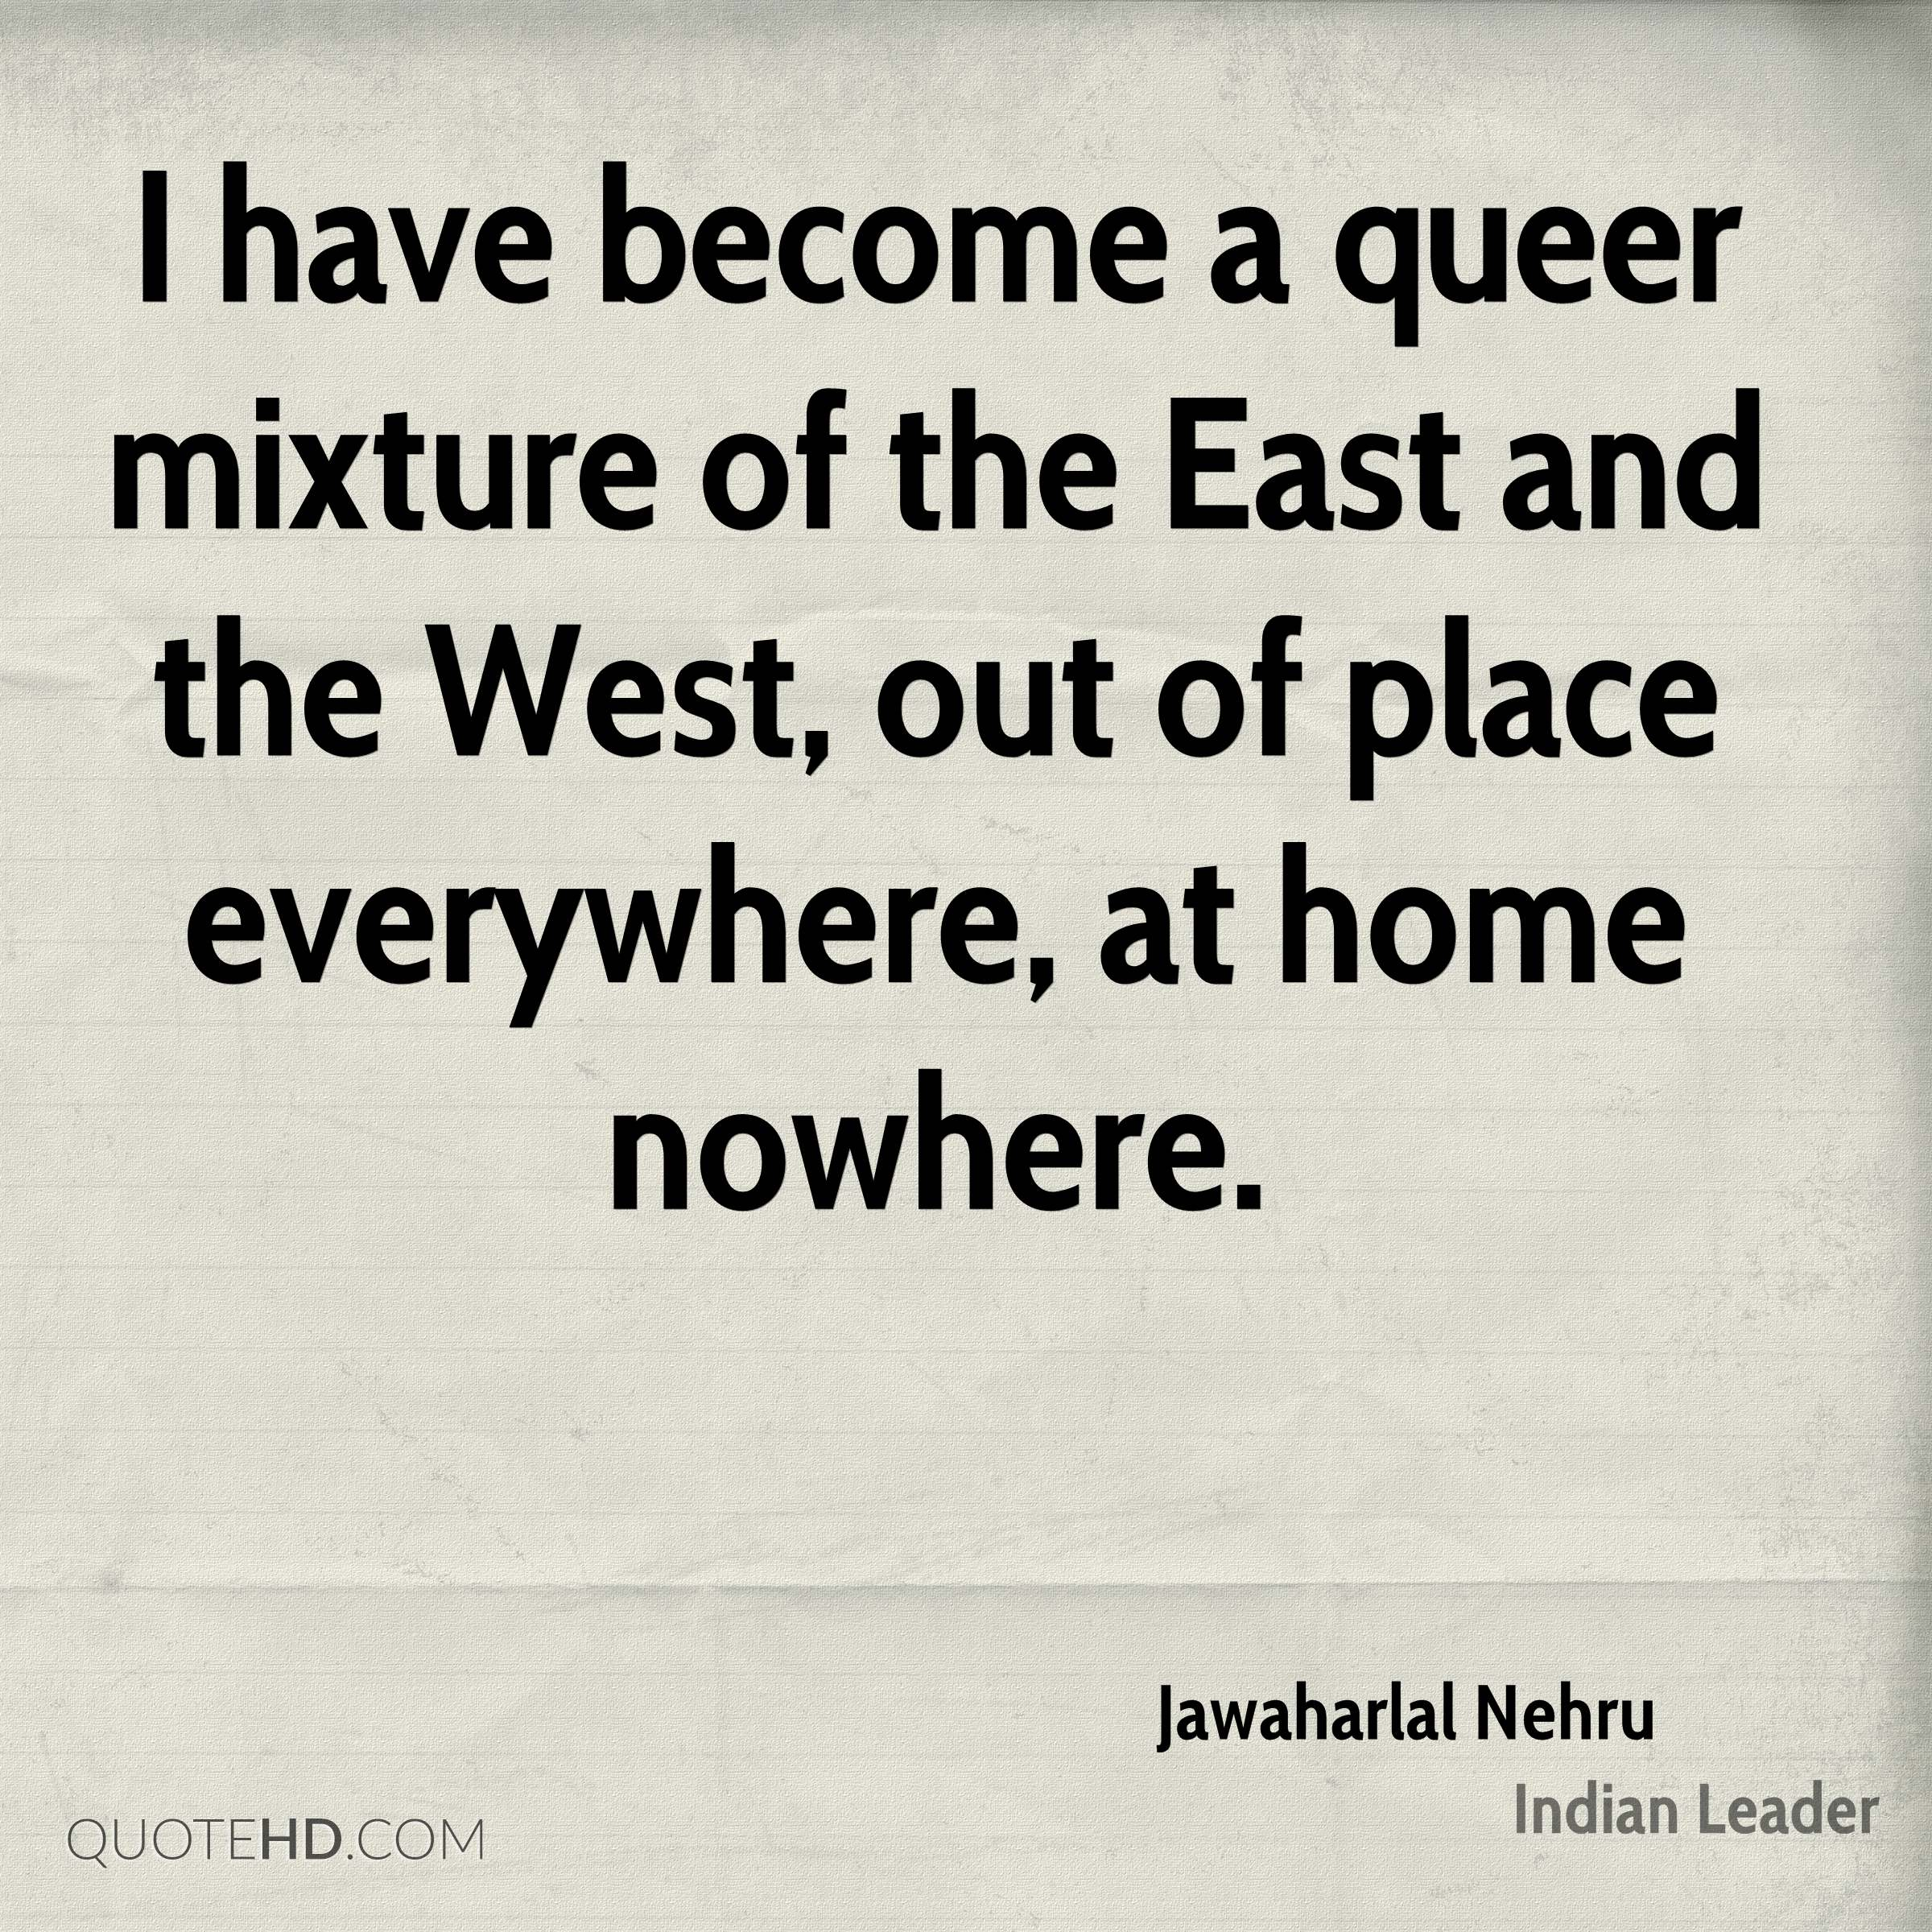 I have become a queer mixture of the East and the West, out of place everywhere, at home nowhere.